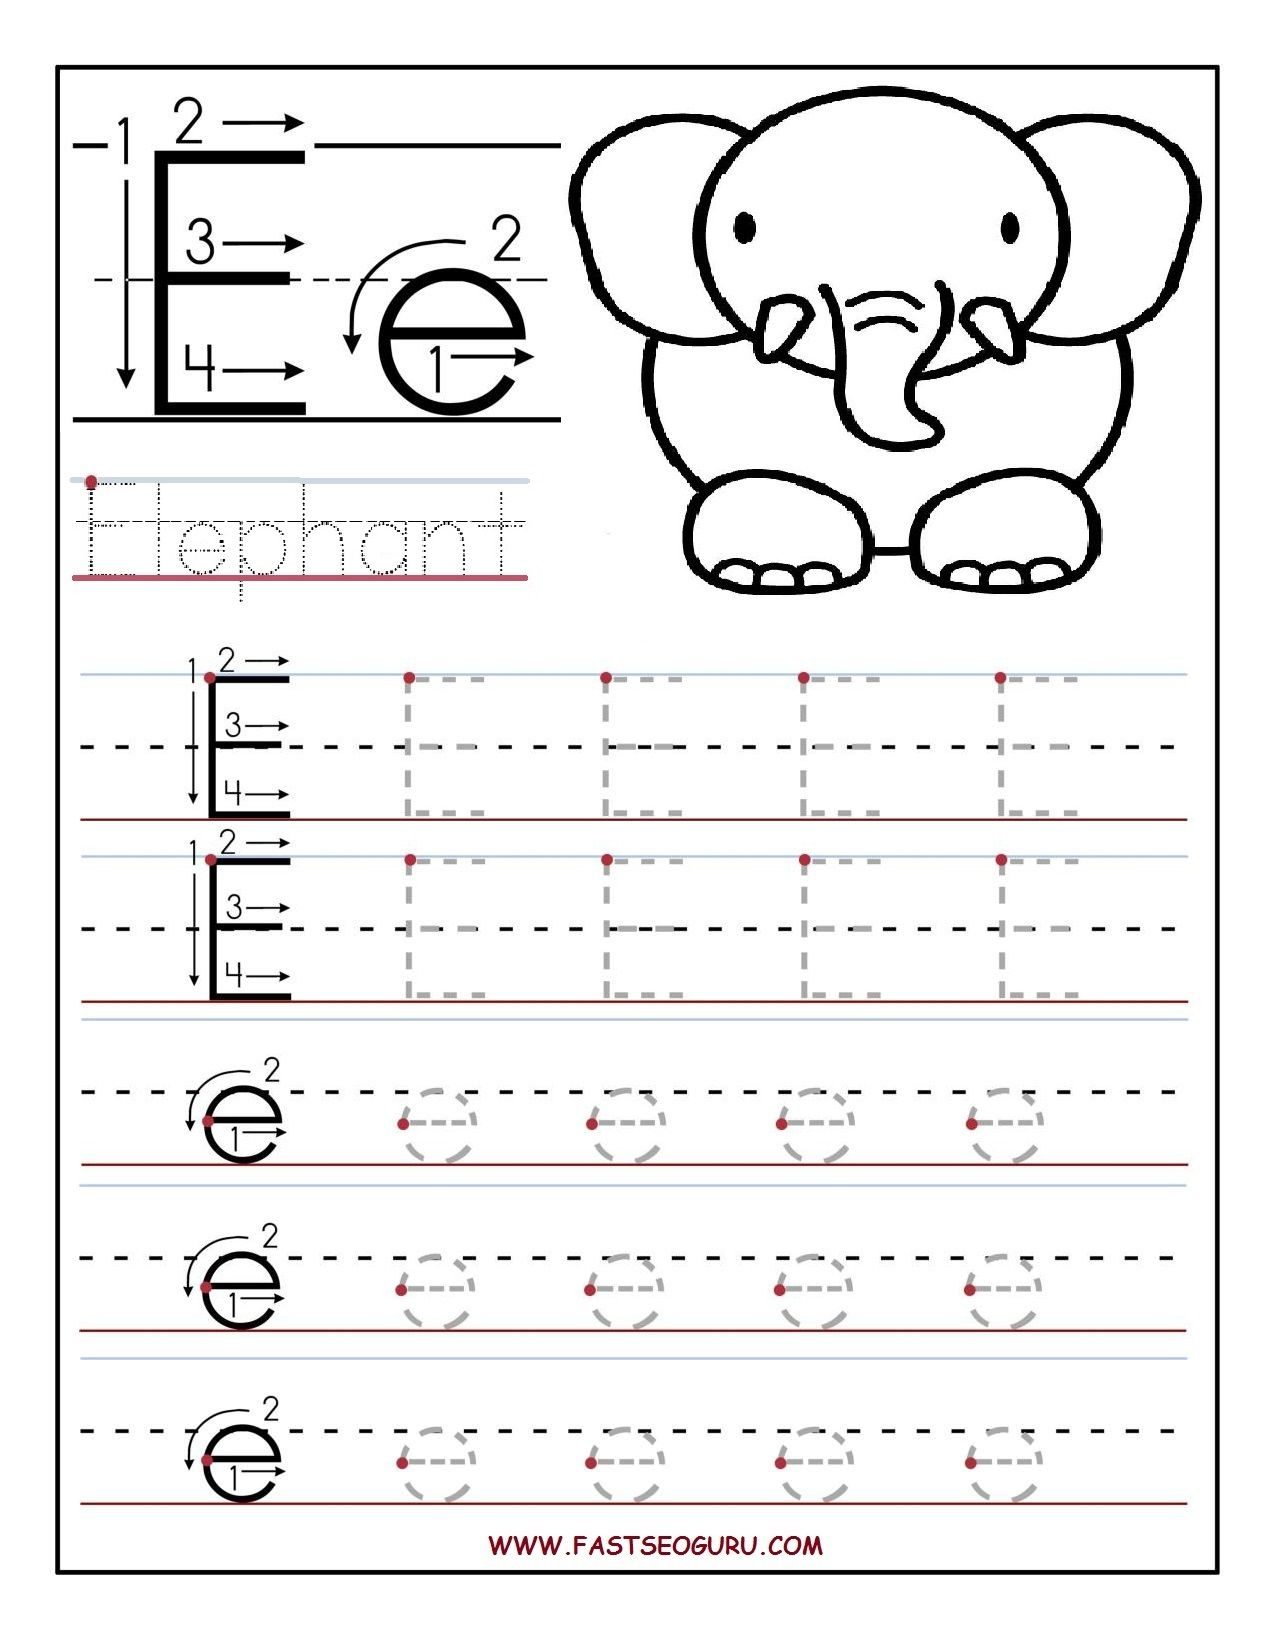 Printable Letter E Tracing Worksheets For Preschool within Letter E Tracing Page